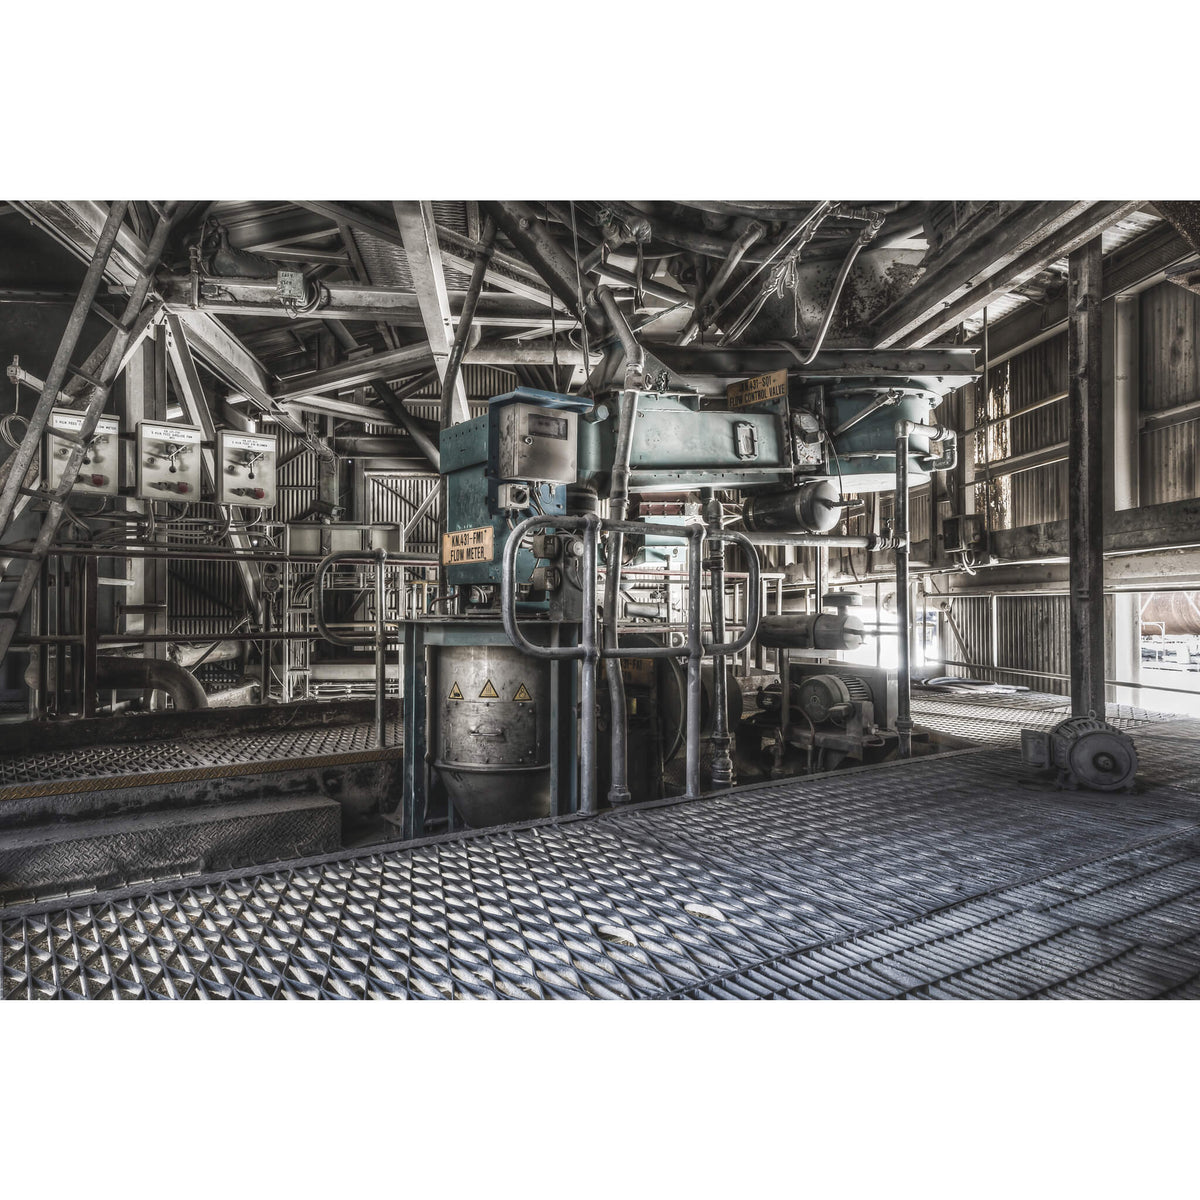 Weigh Feeder | Kandos Cement Works Fine Art Print - Lost Collective Shop